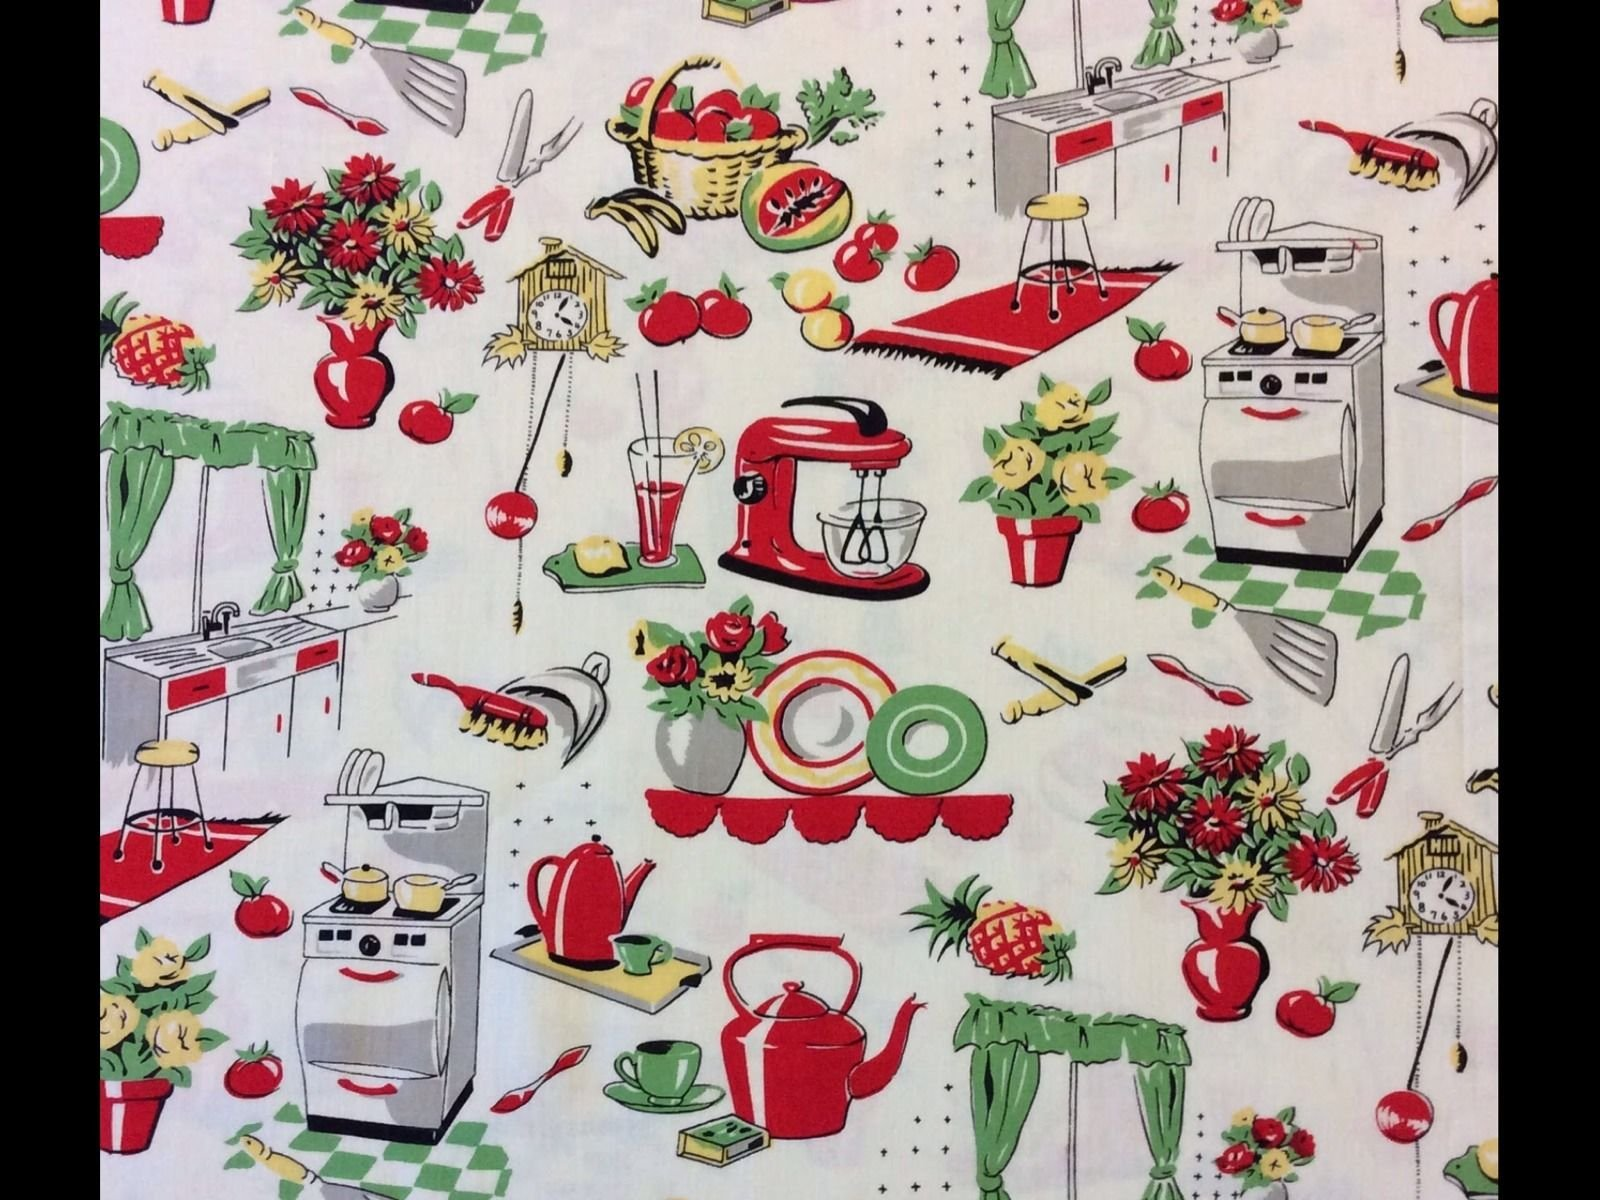 Retro atomic kitschy kitchen cooking oven mixer cotton quilt fabric mm86